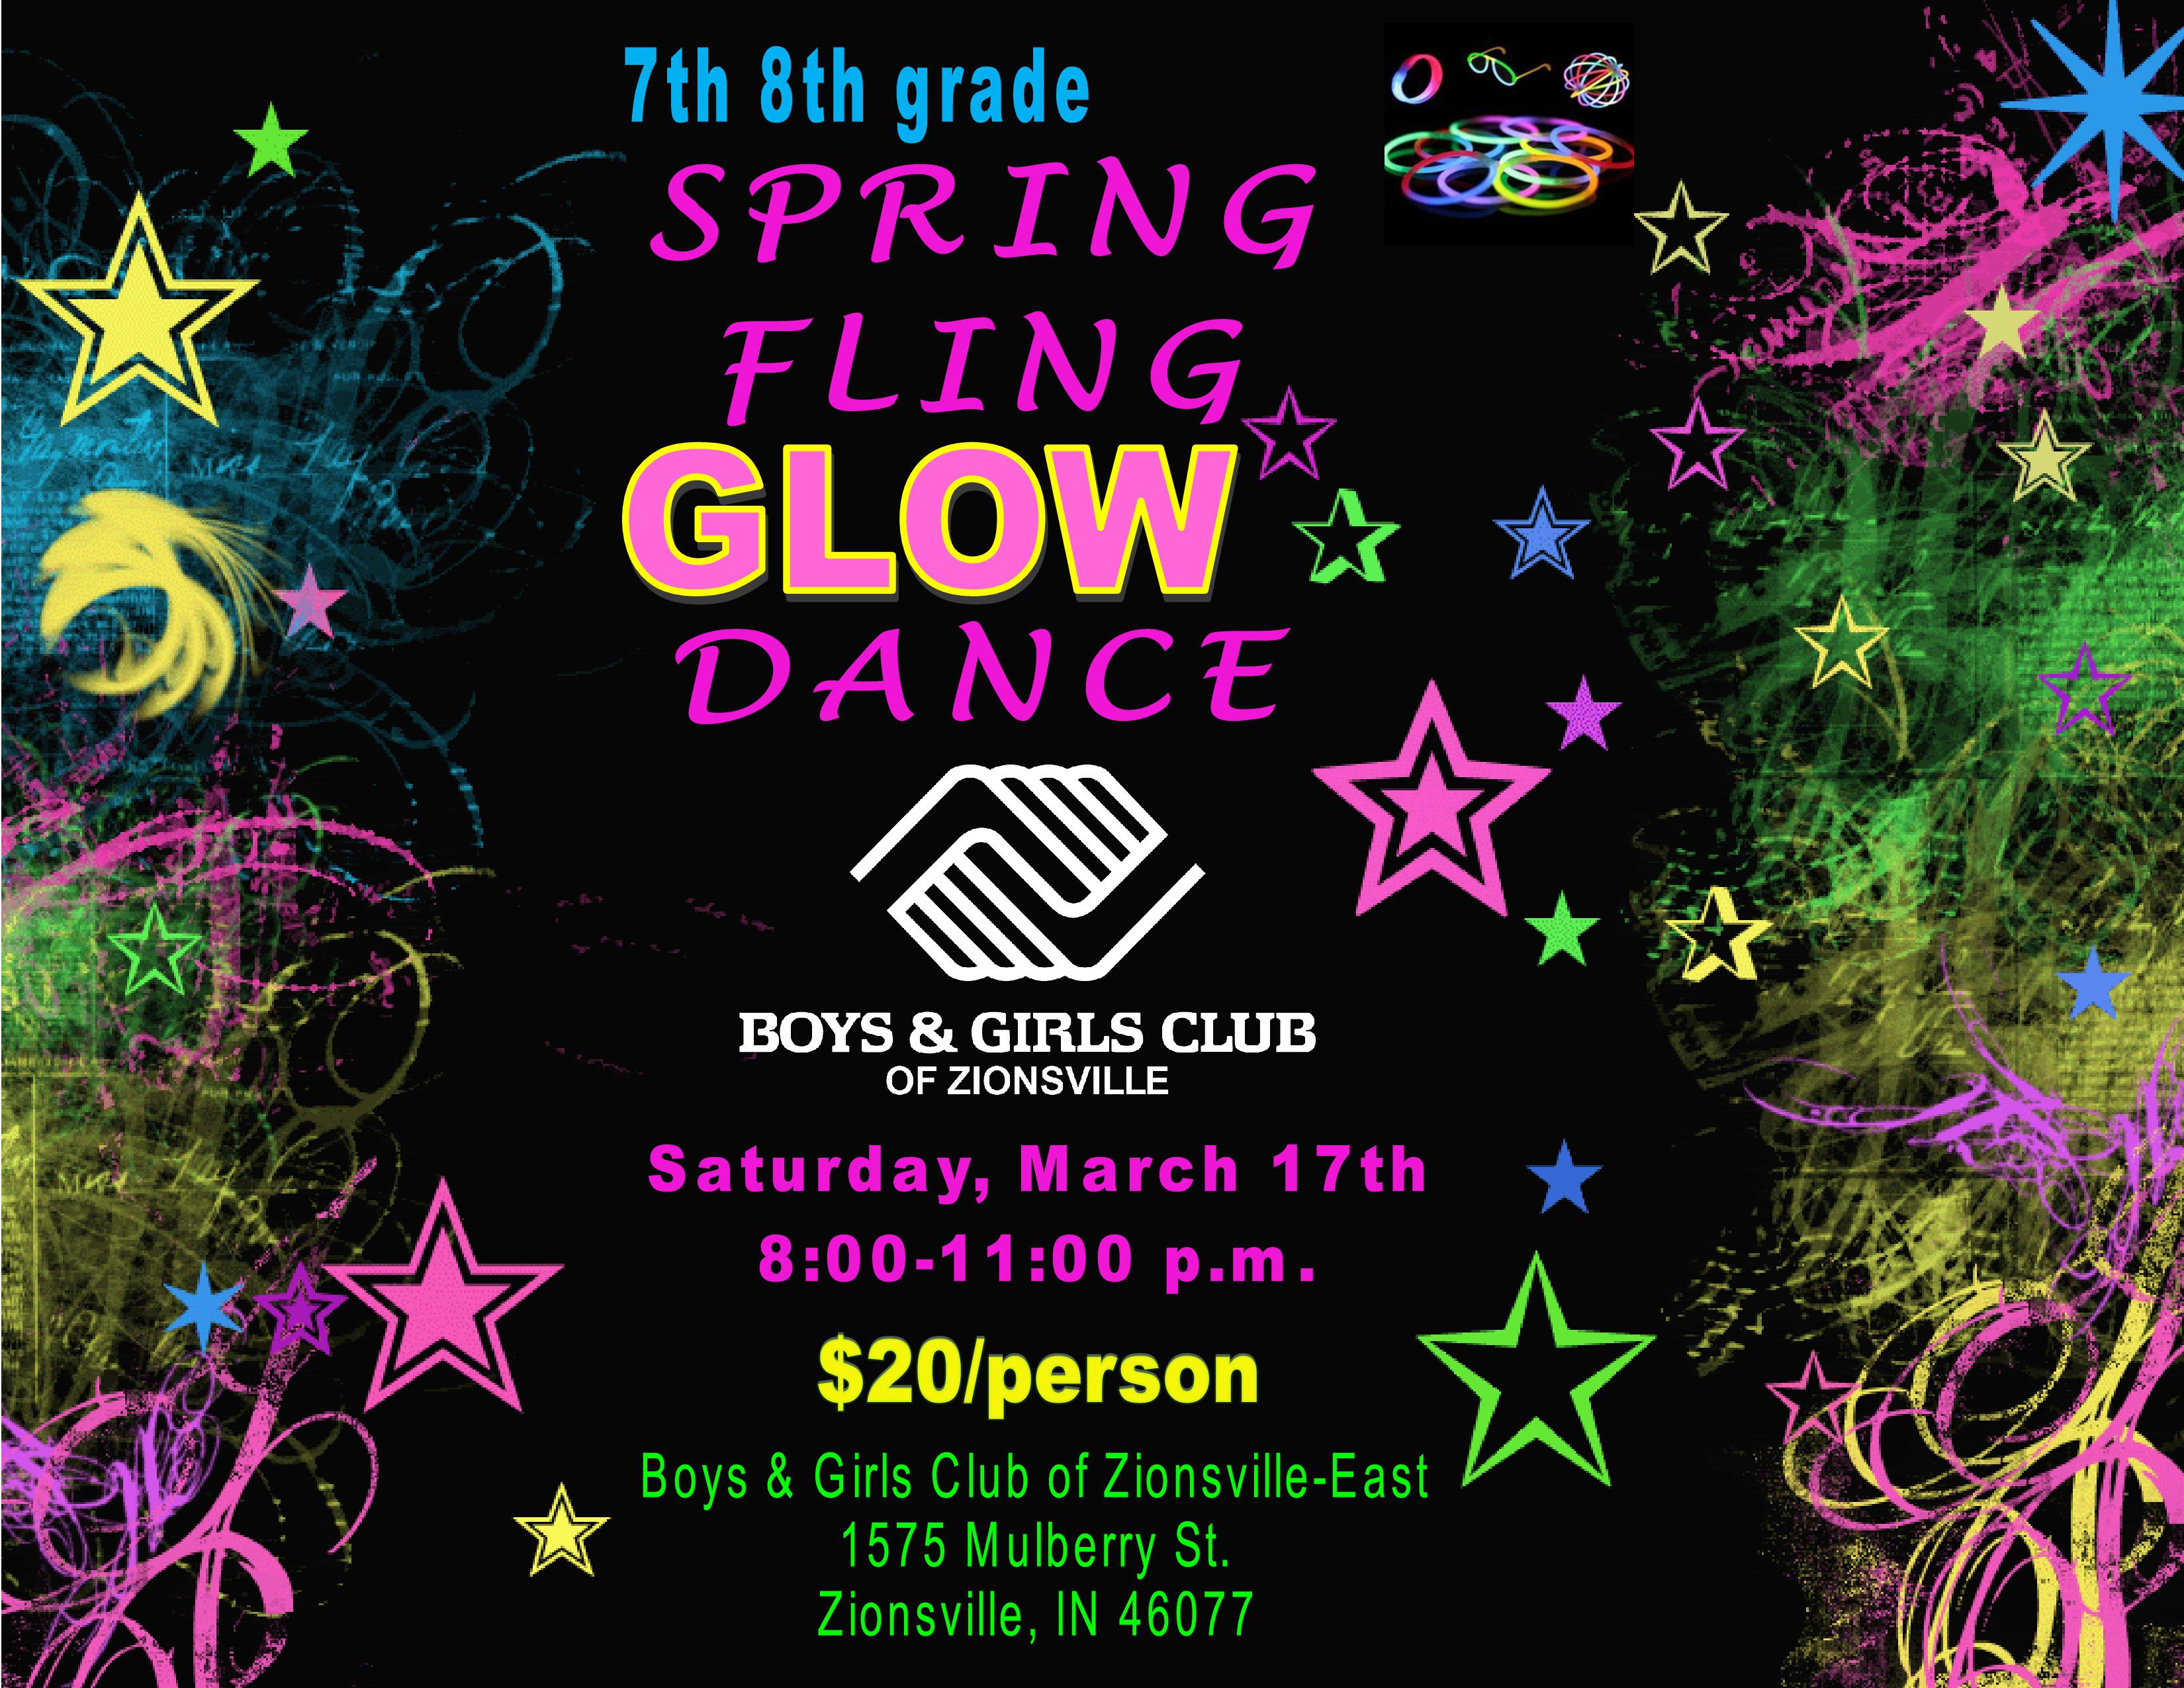 Spring Fling Glow Dance at Boys & Girls Club of Zionsville